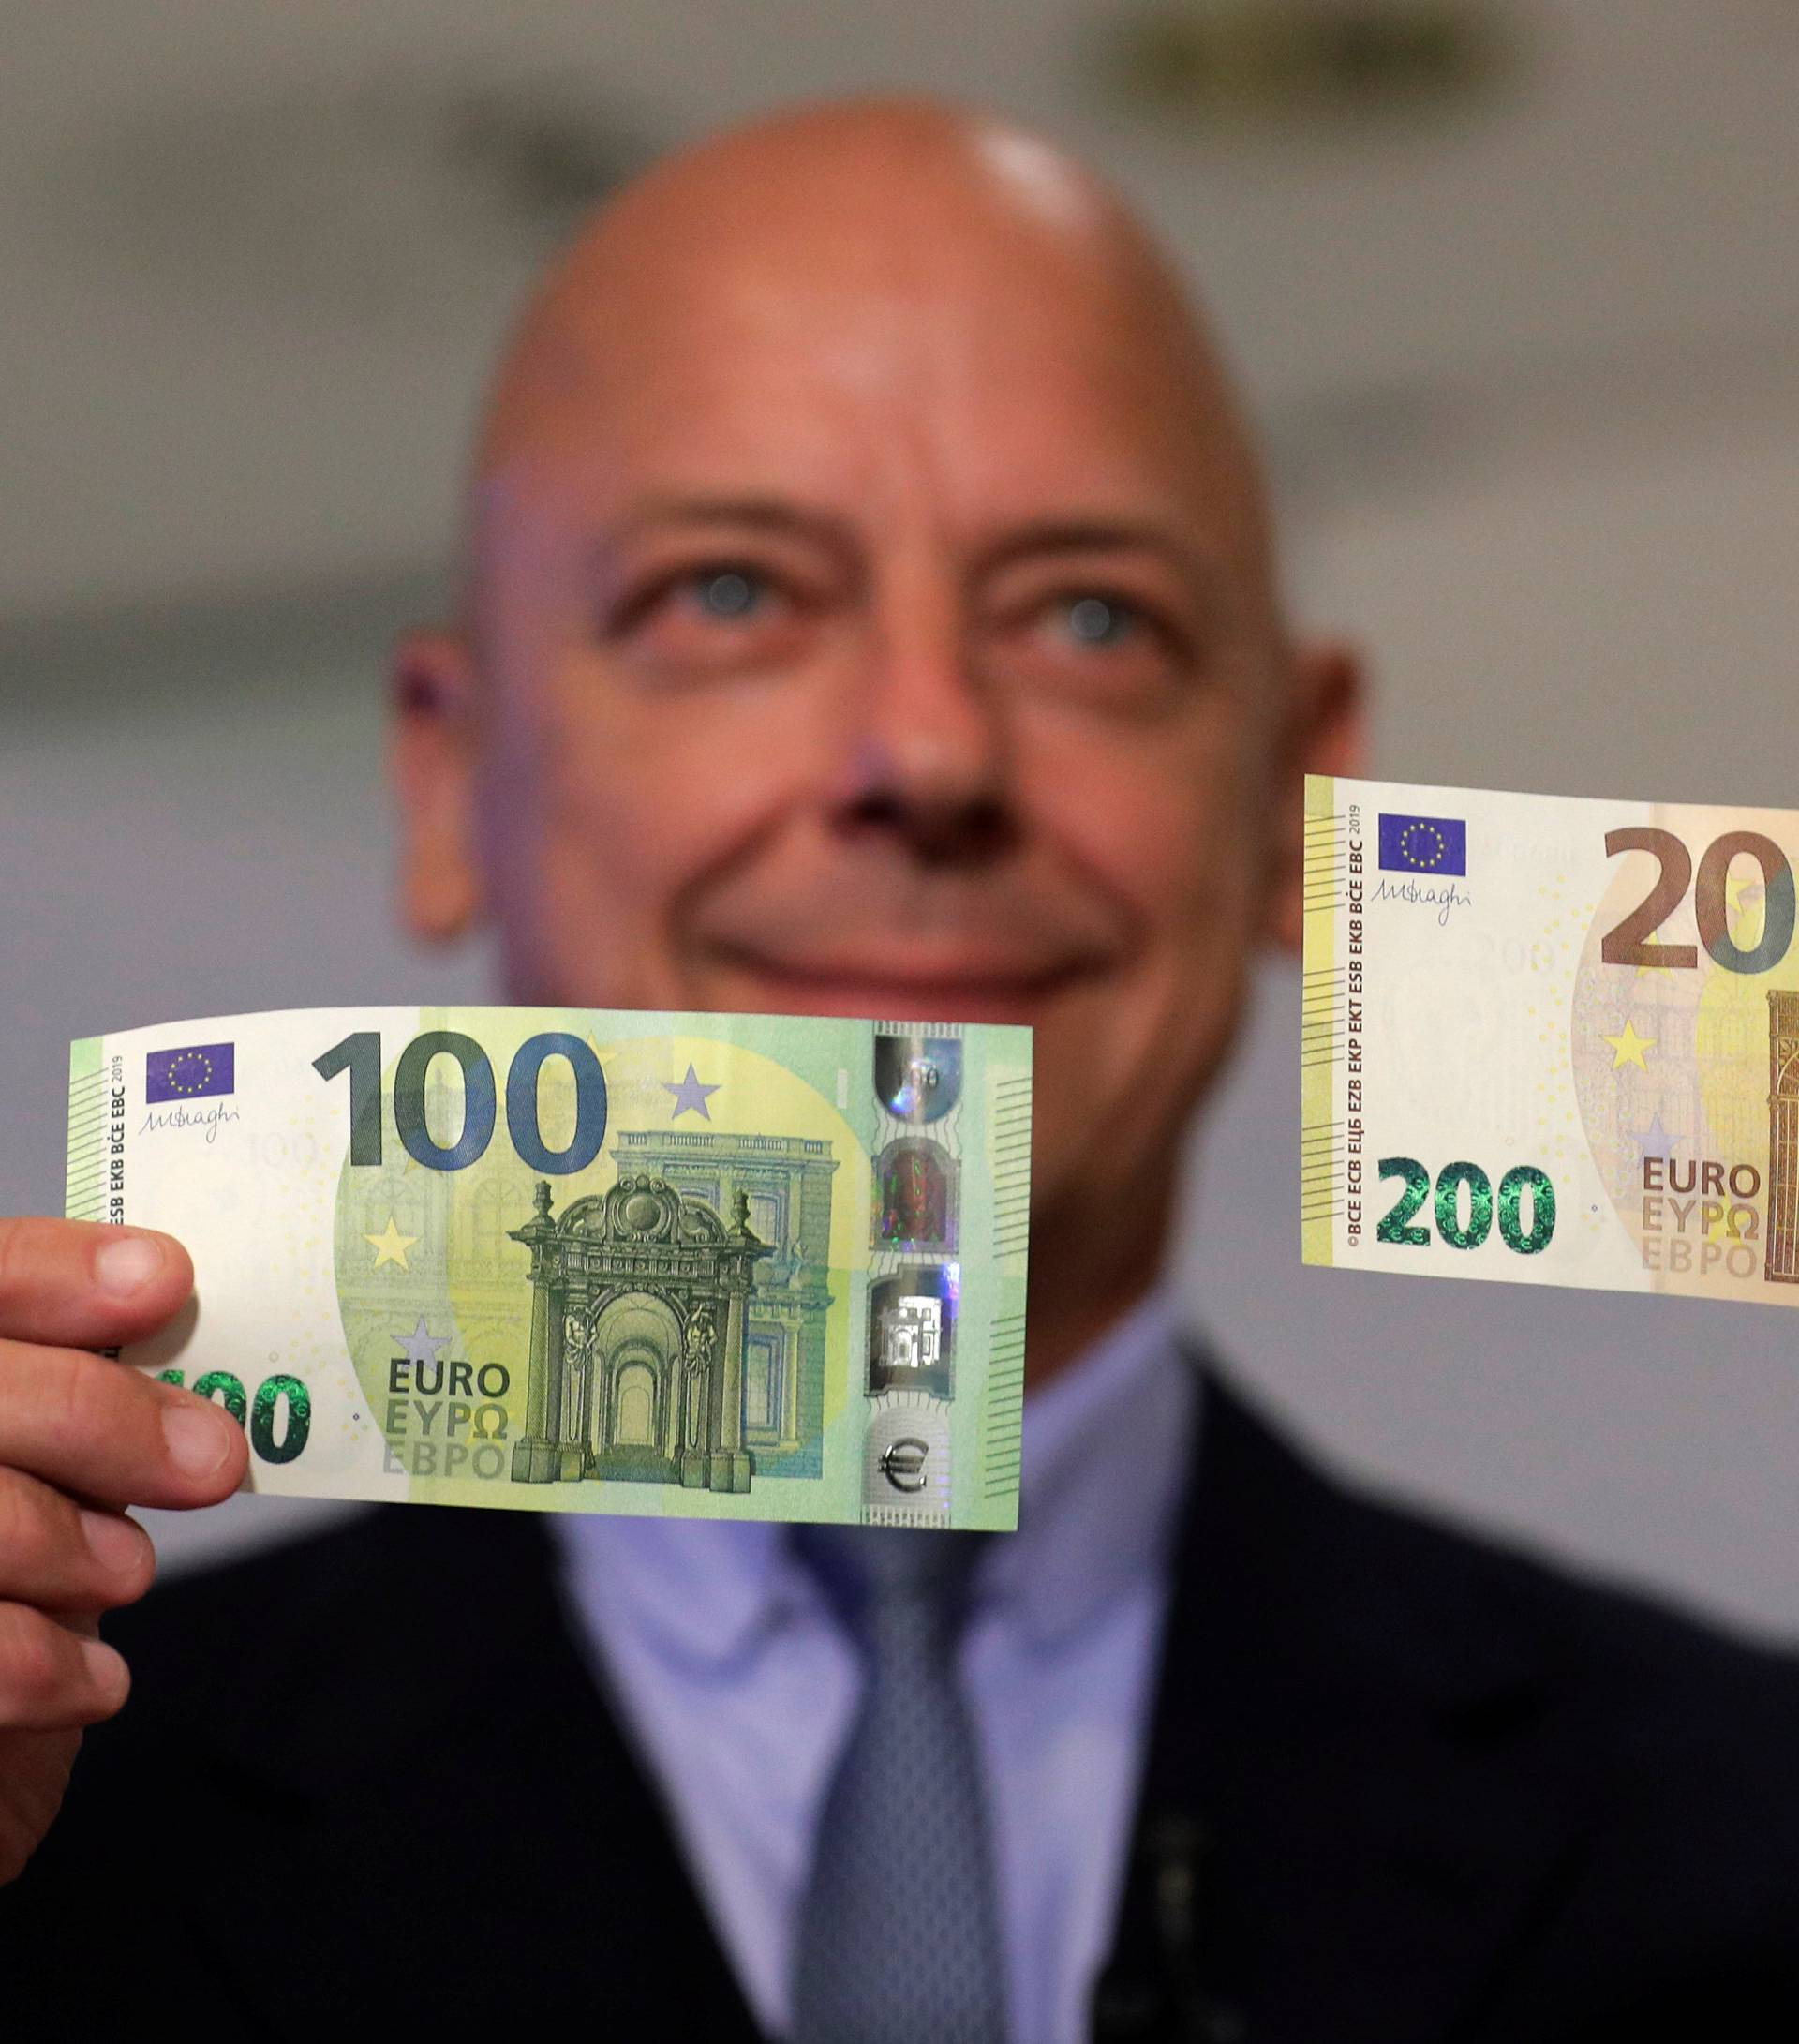 Austrian Central Bank Director Kurt Pribil displays new 100 and 200 euro banknotes in Vienna